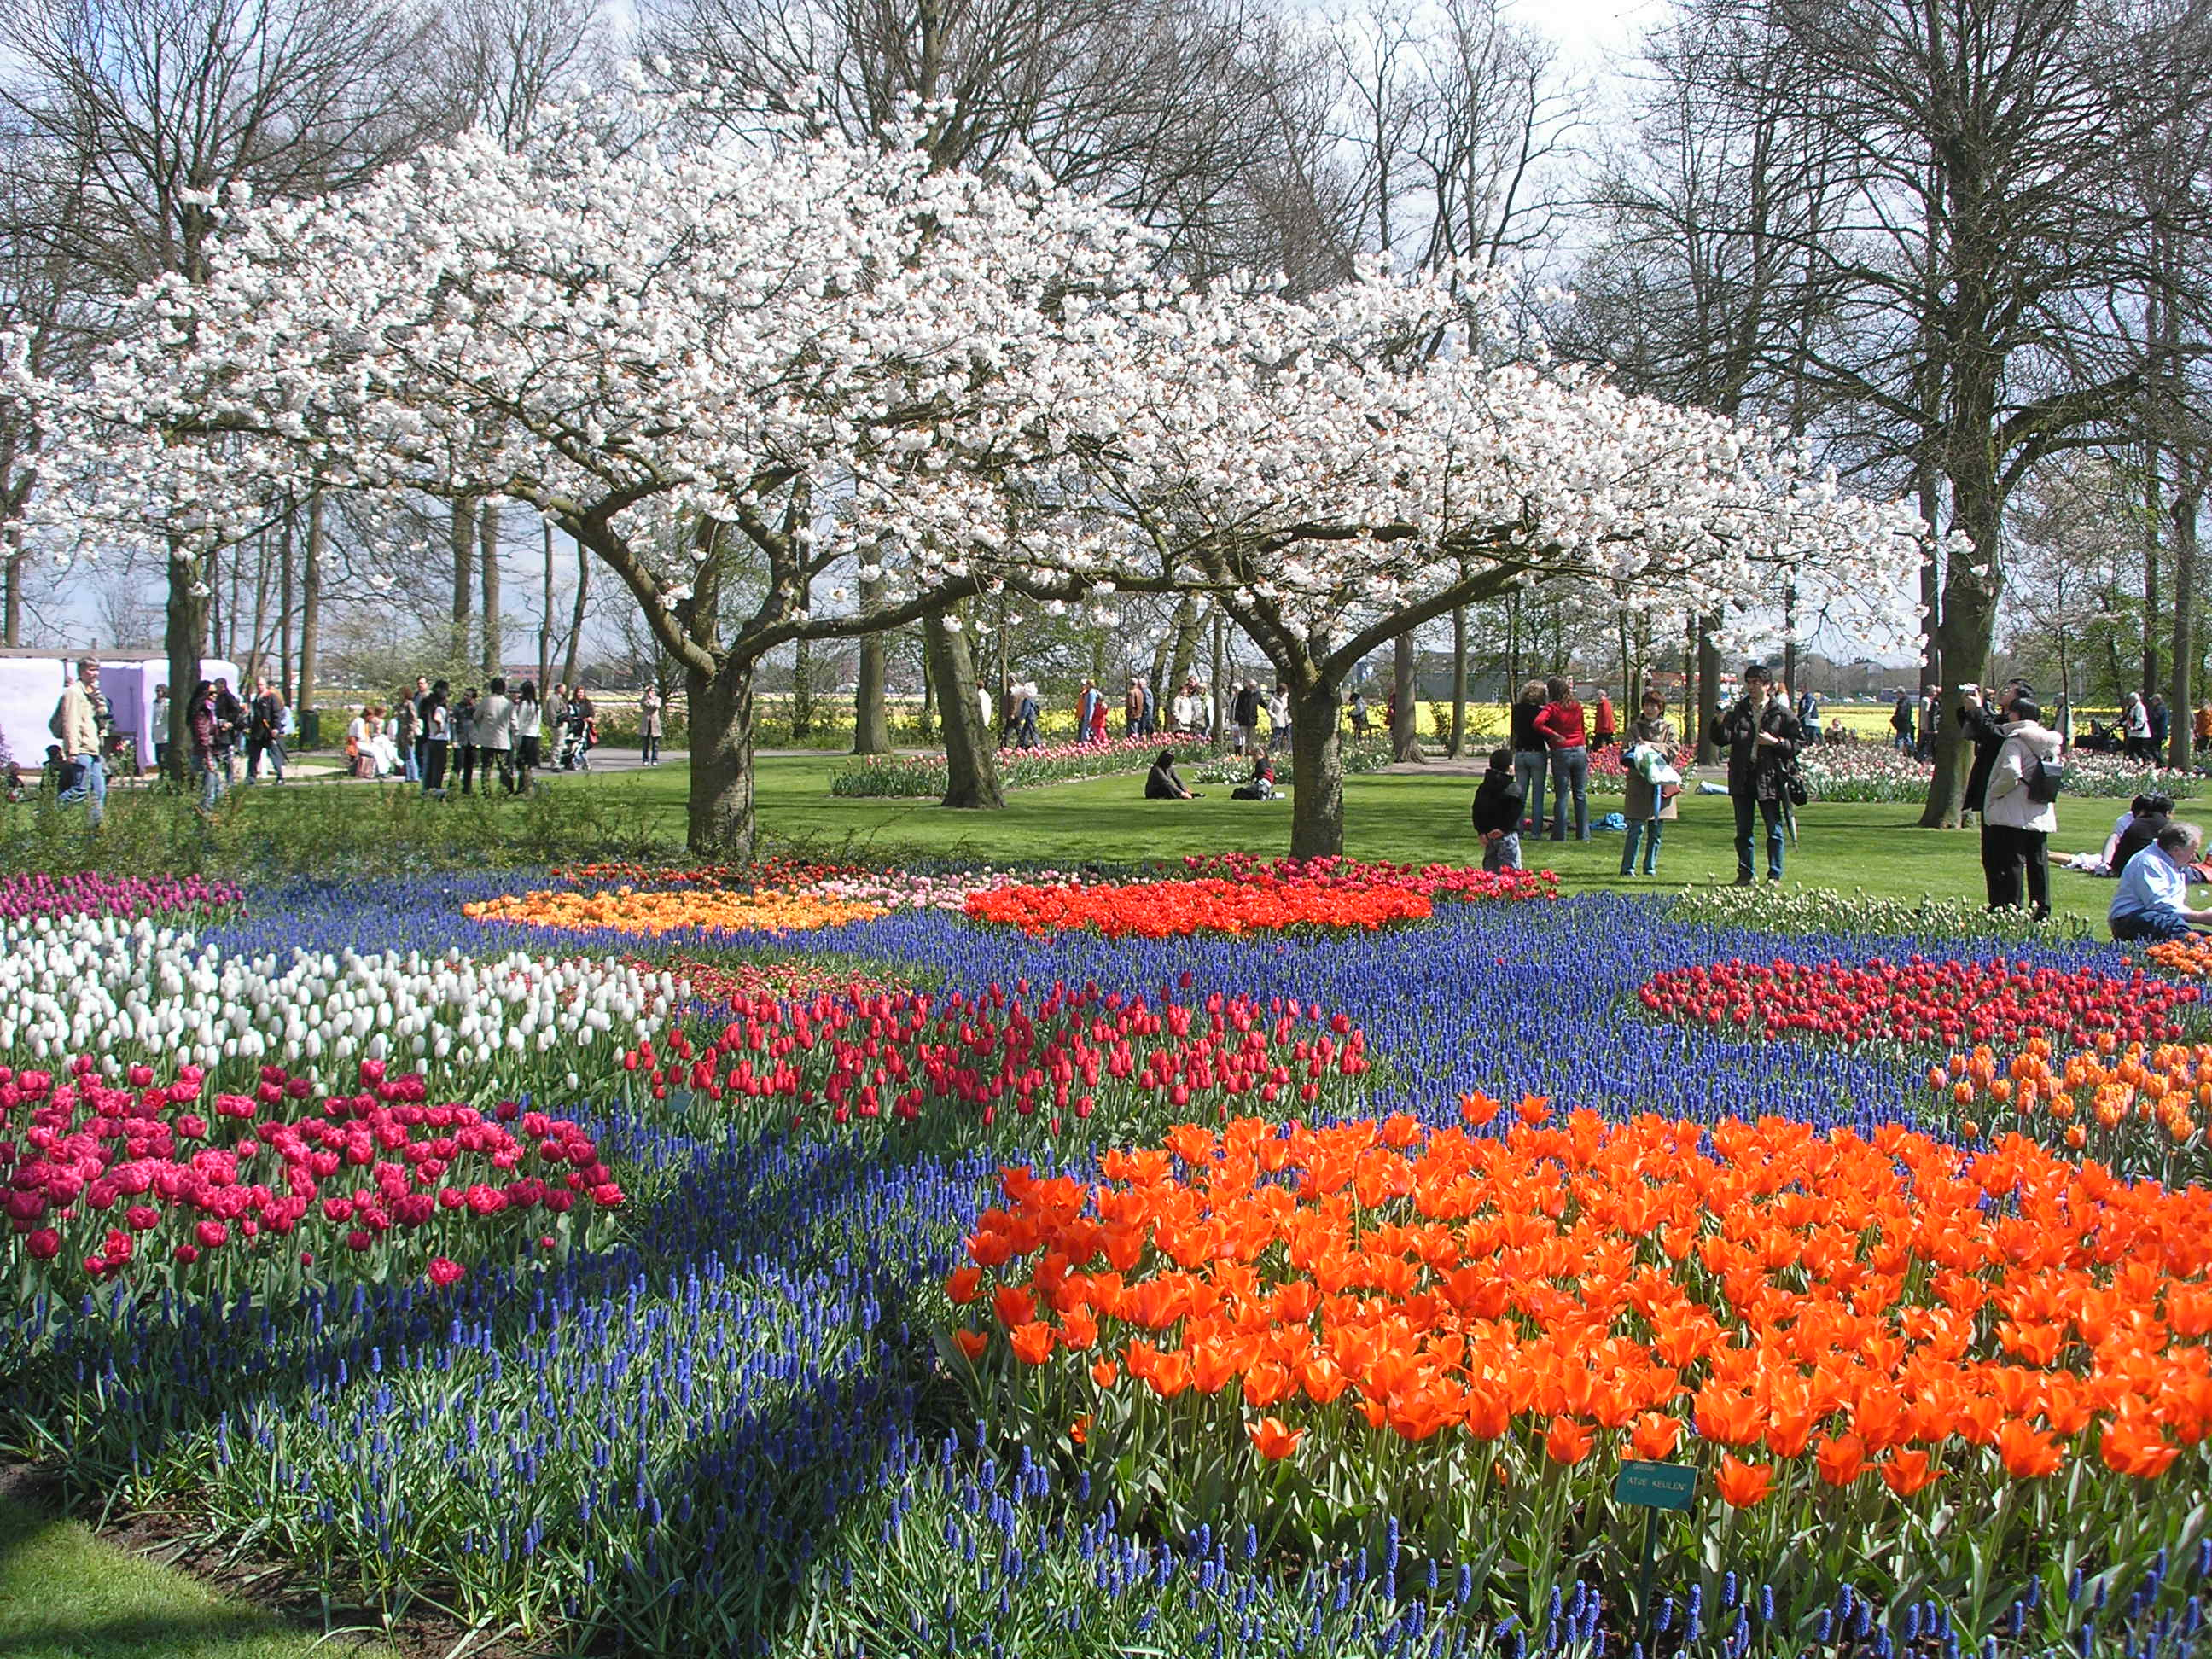 14 Reasons To Visit The Netherlands In Spring